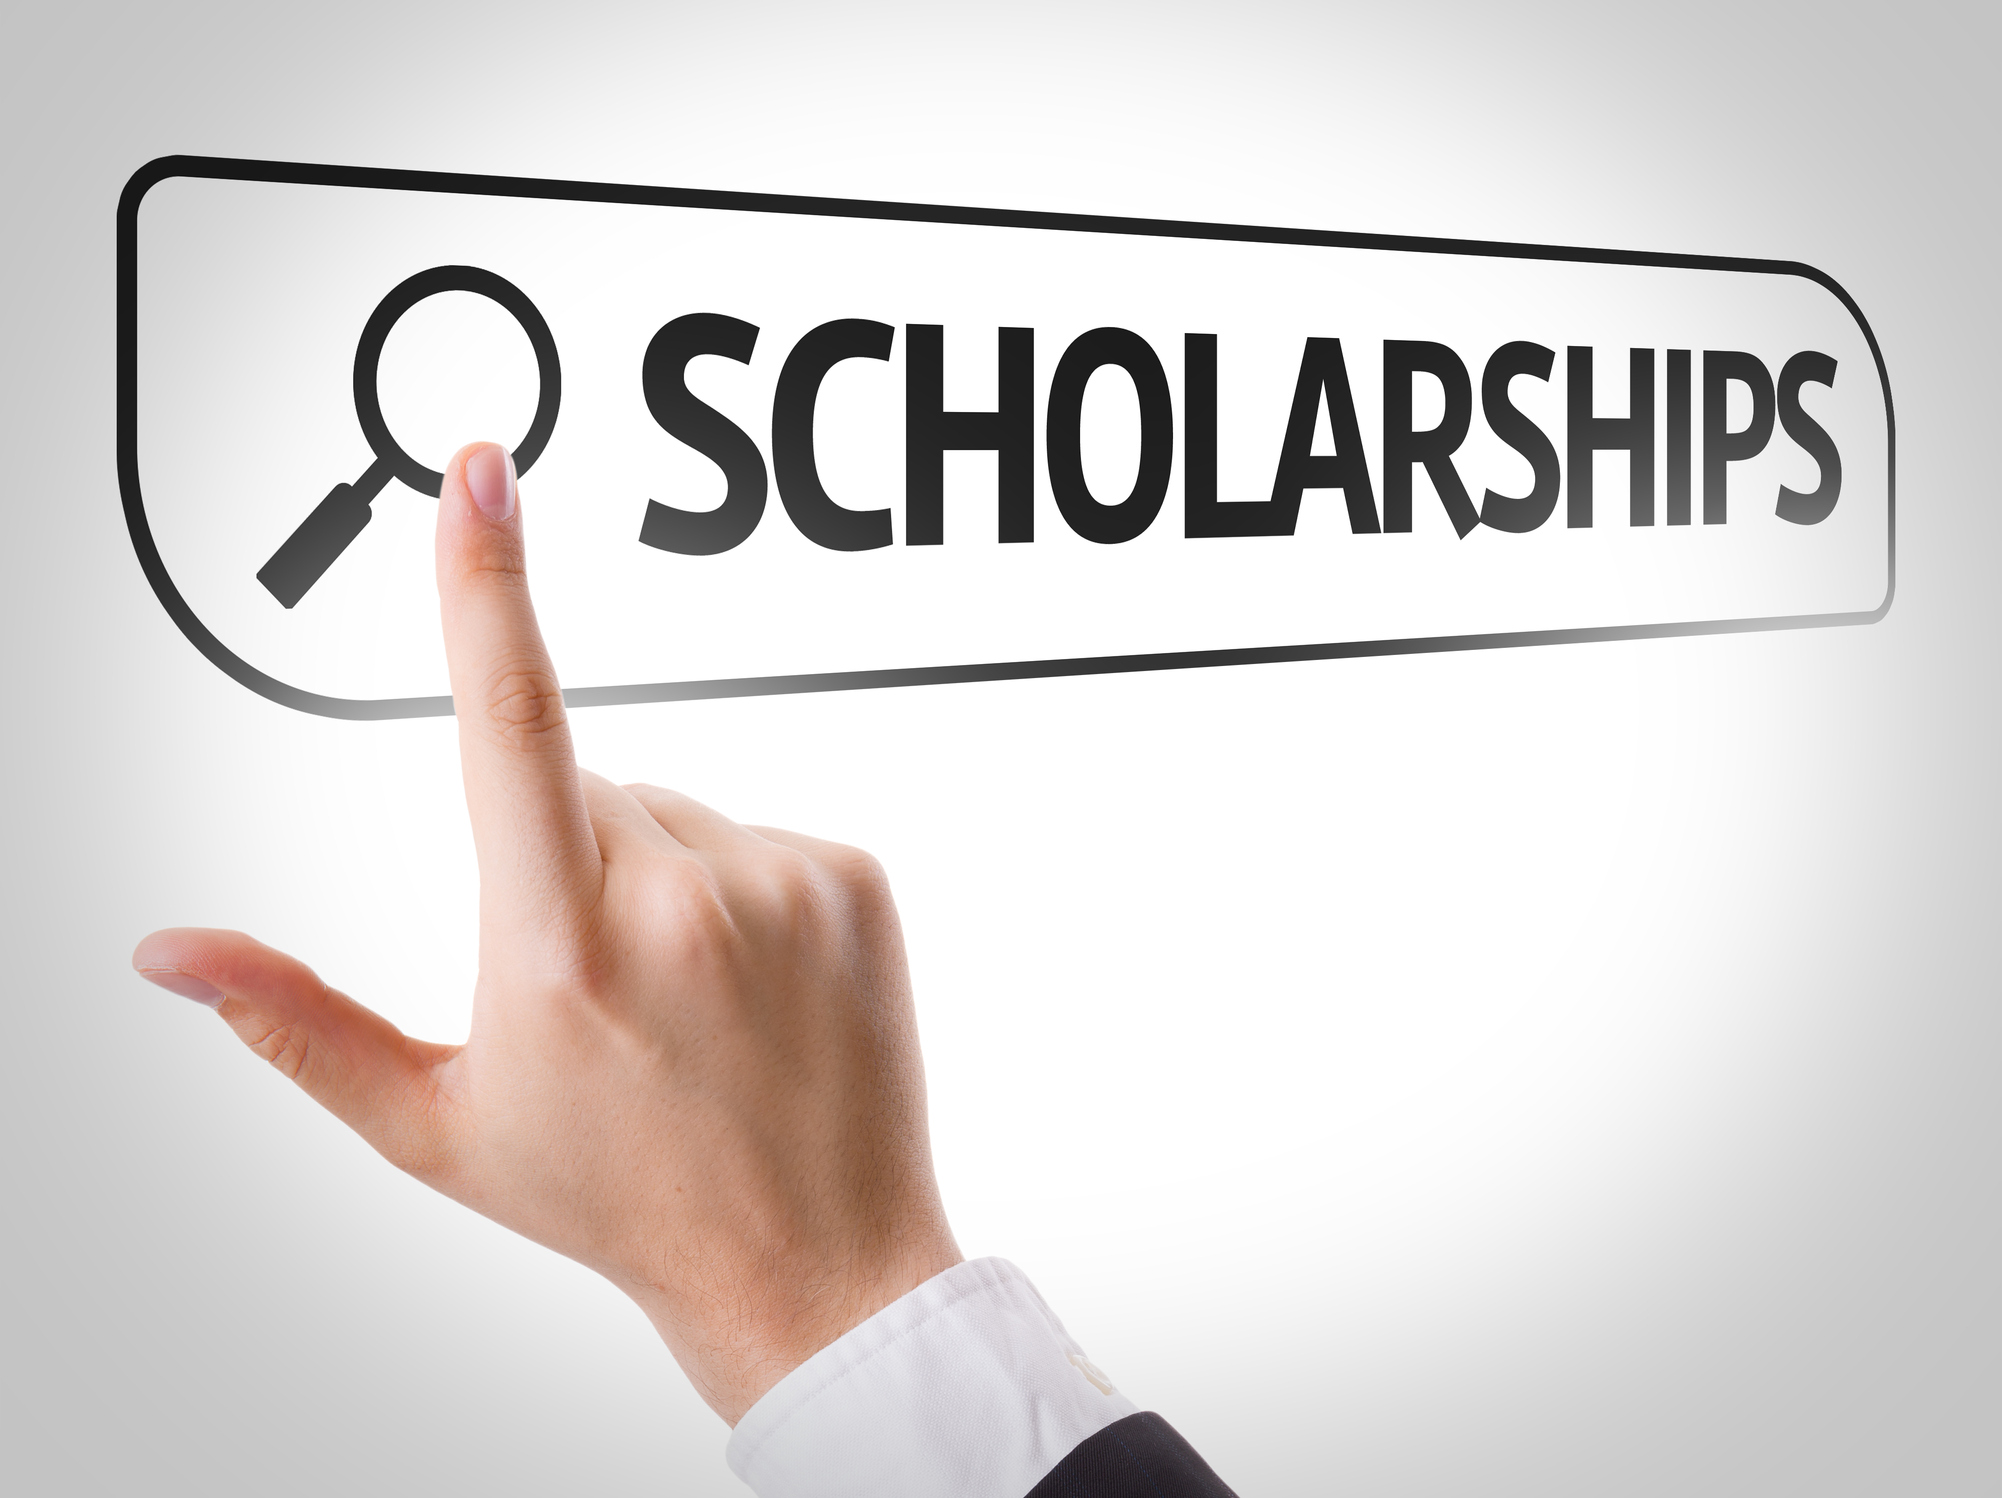 Scholarships with March 2015 deadlines